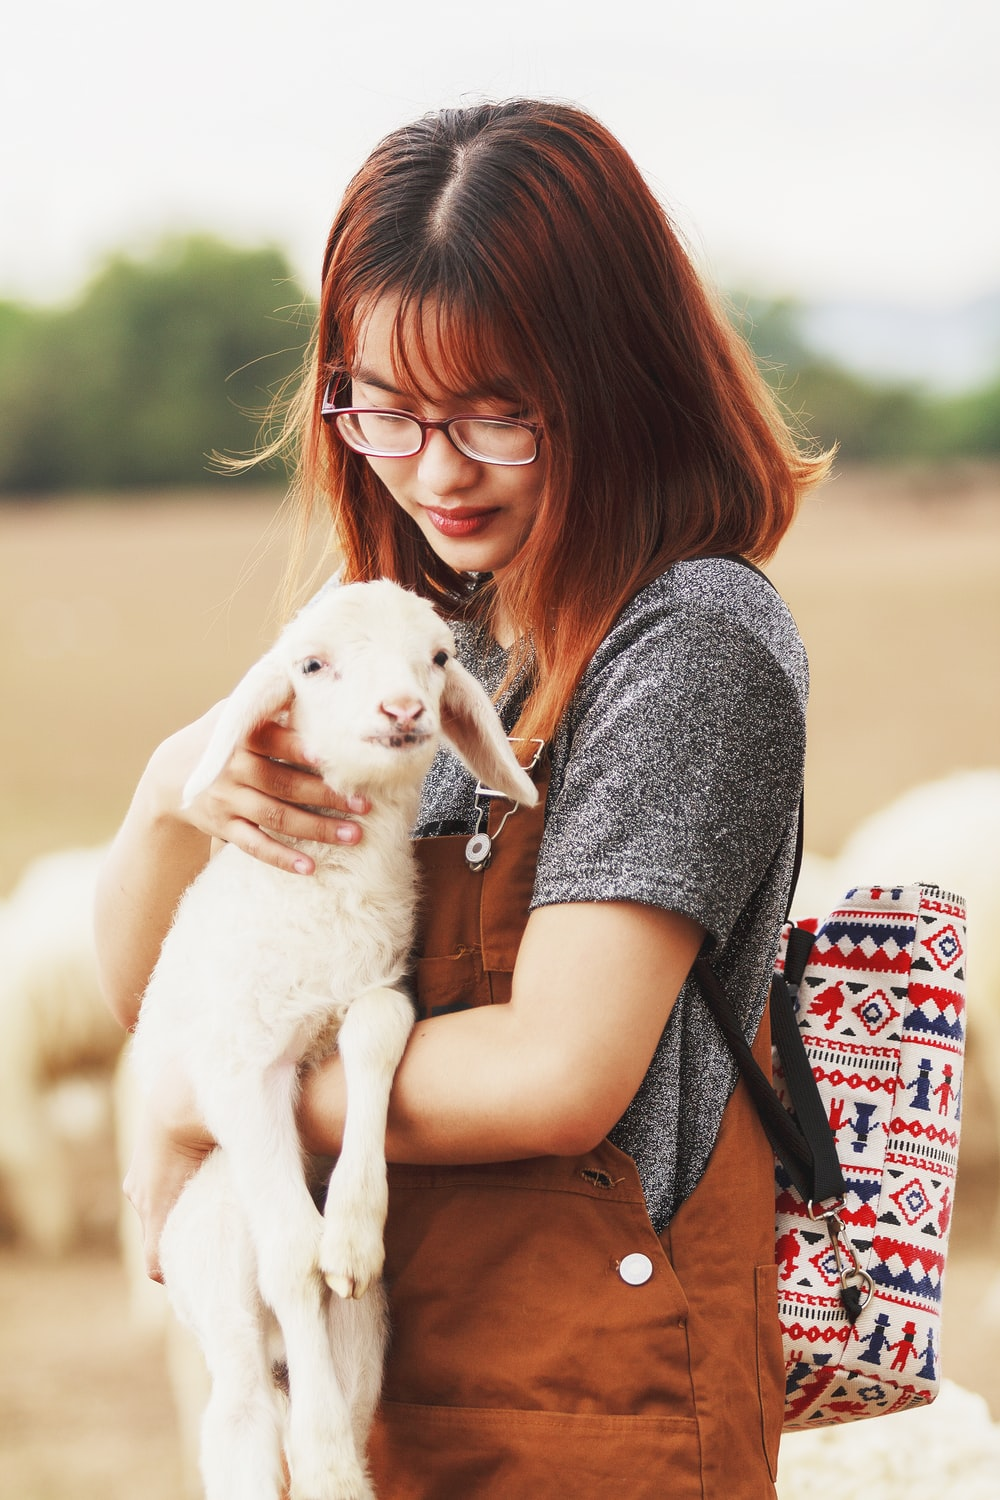 woman carrying a goat